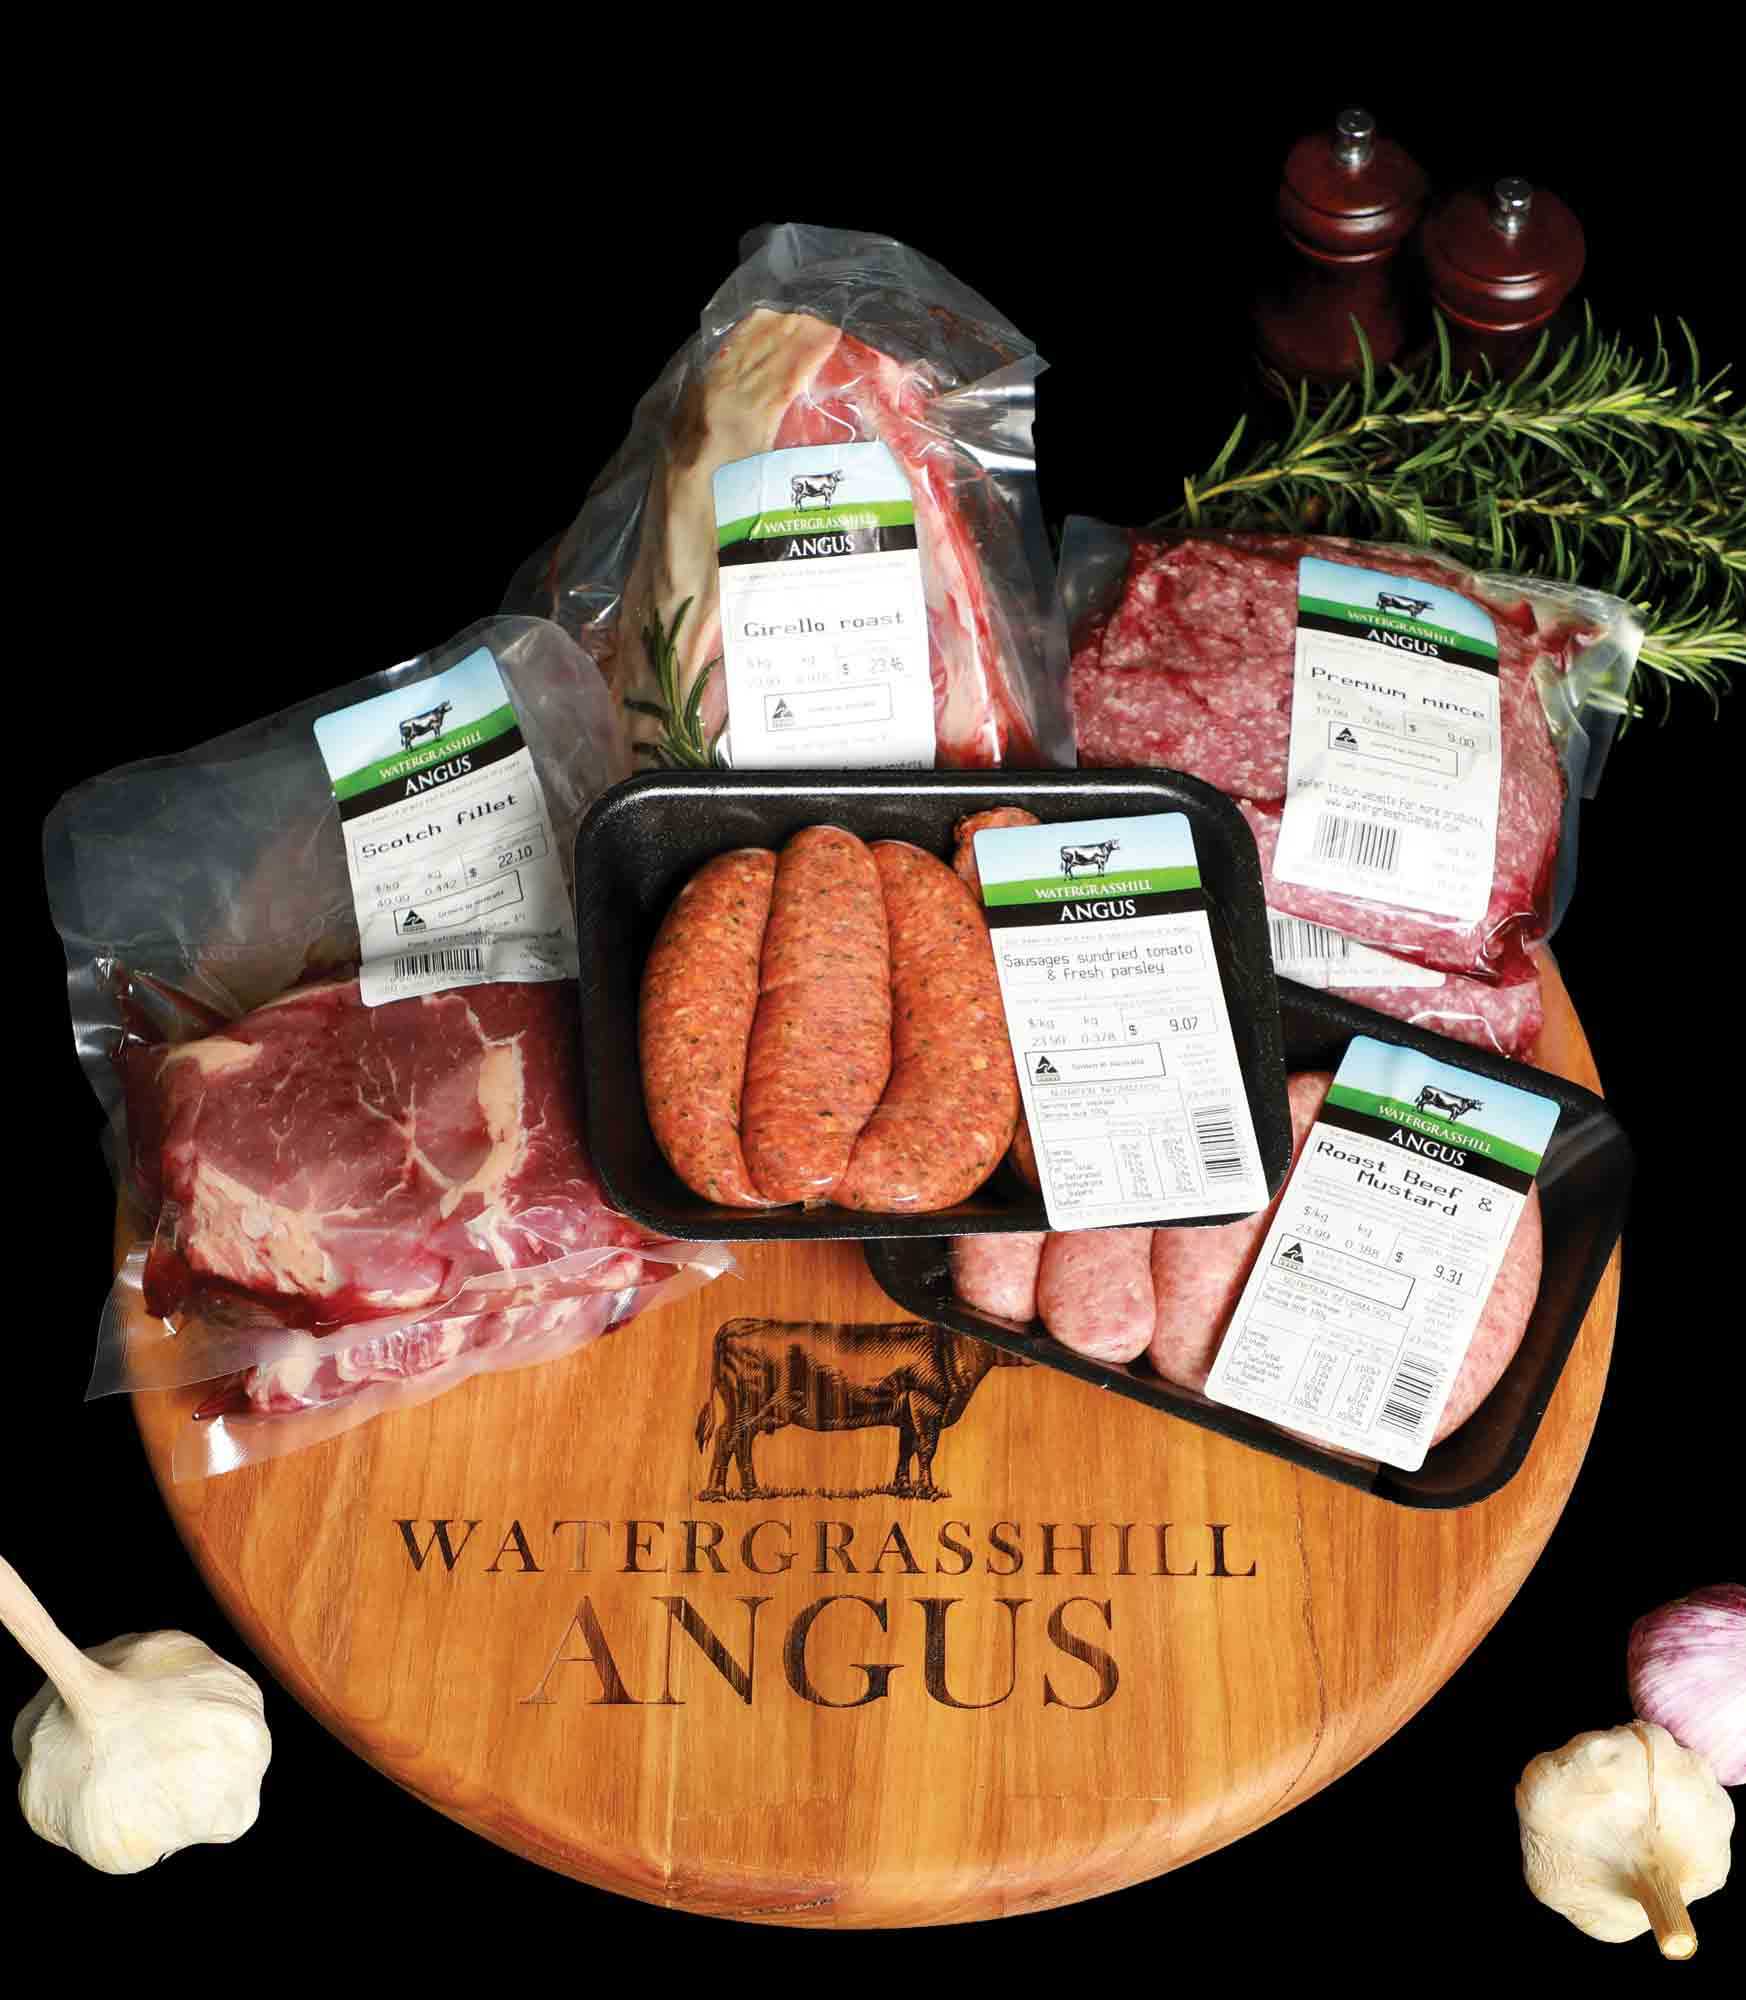 Beef in a Box - Online Angus Beef